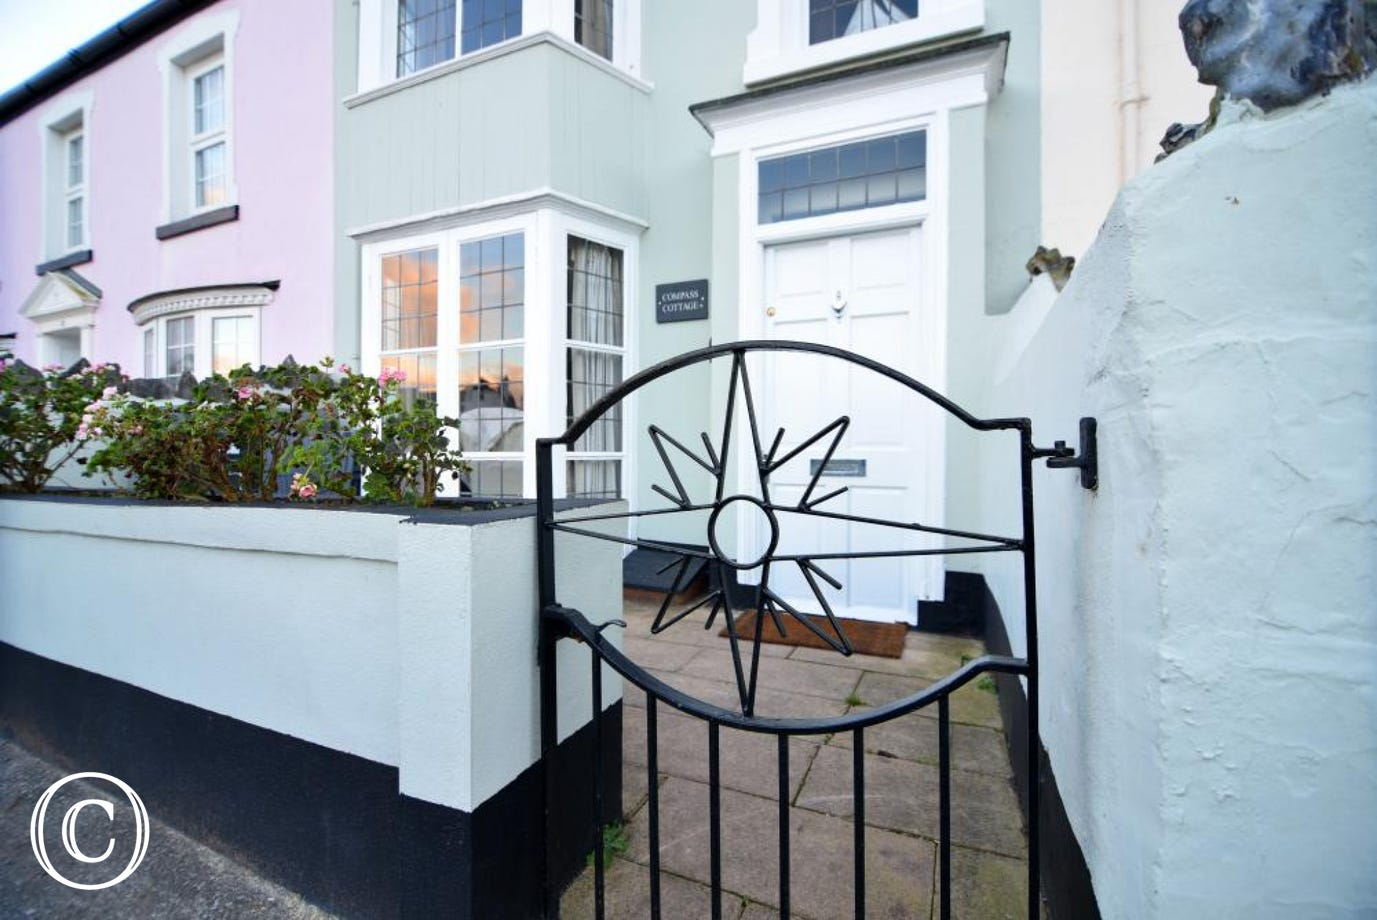 Property gate - Compass Cottage, Shaldon